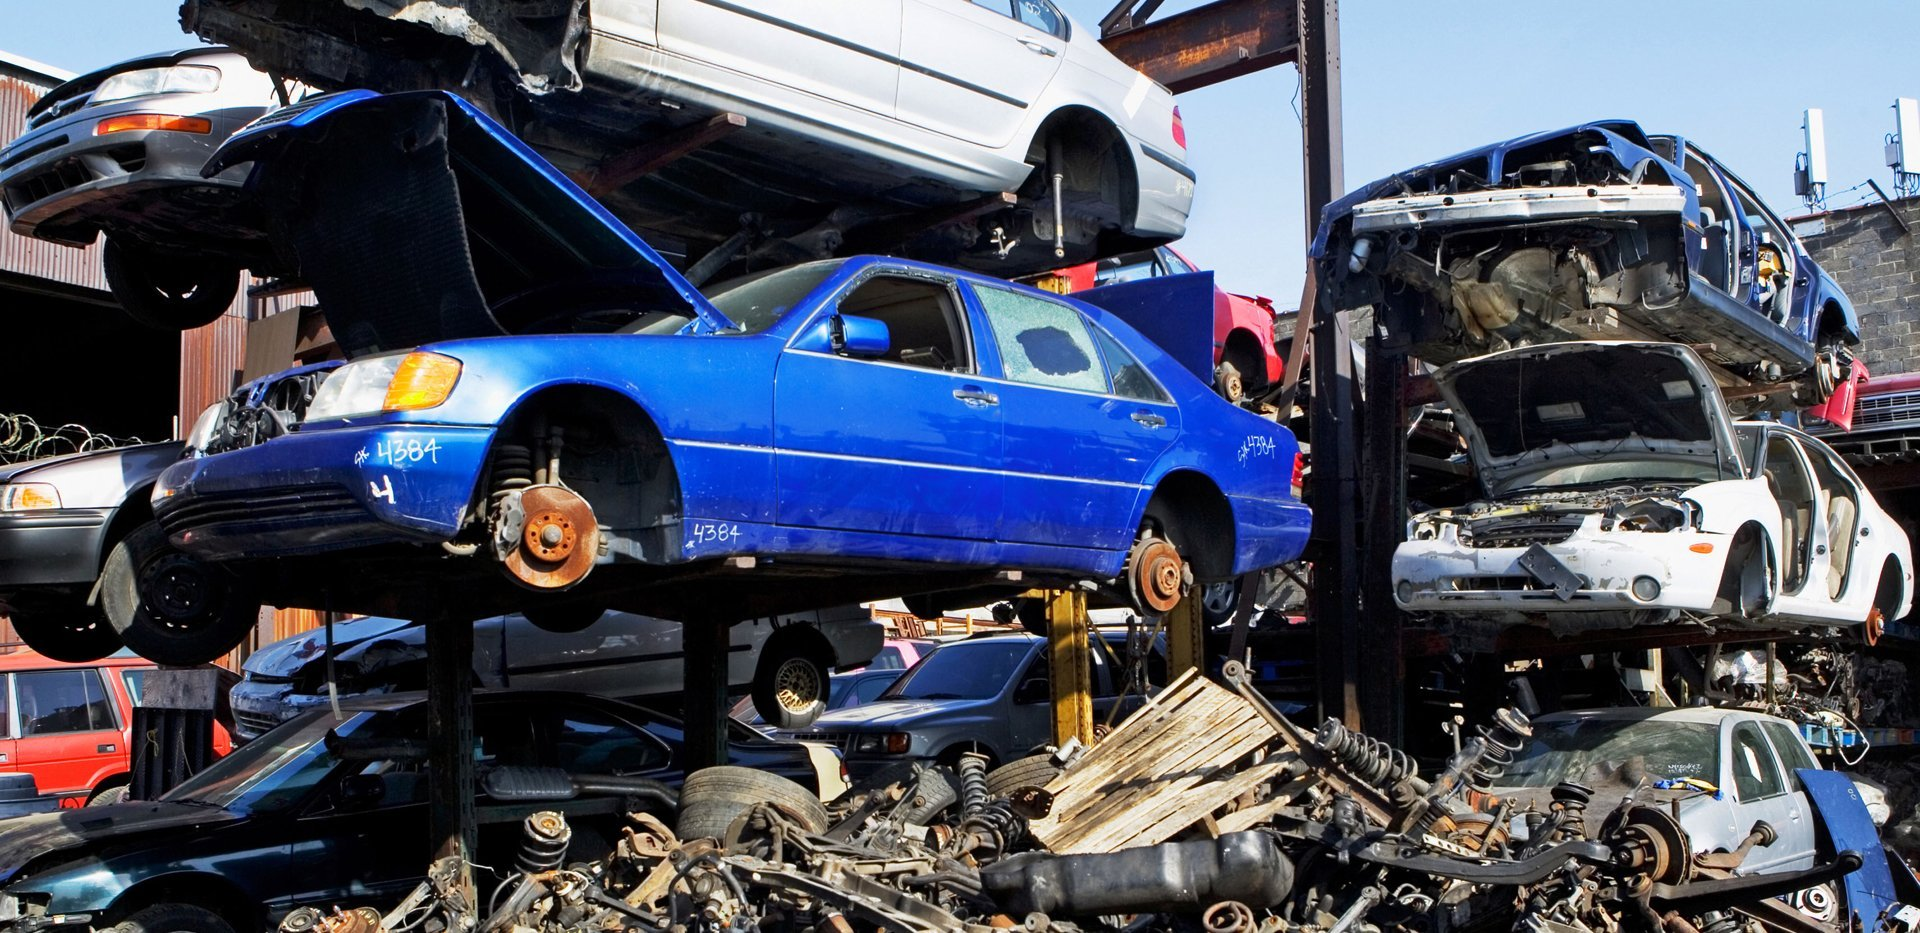 Area Salvage and Recycling | Metal Recycling | Rockford, IL